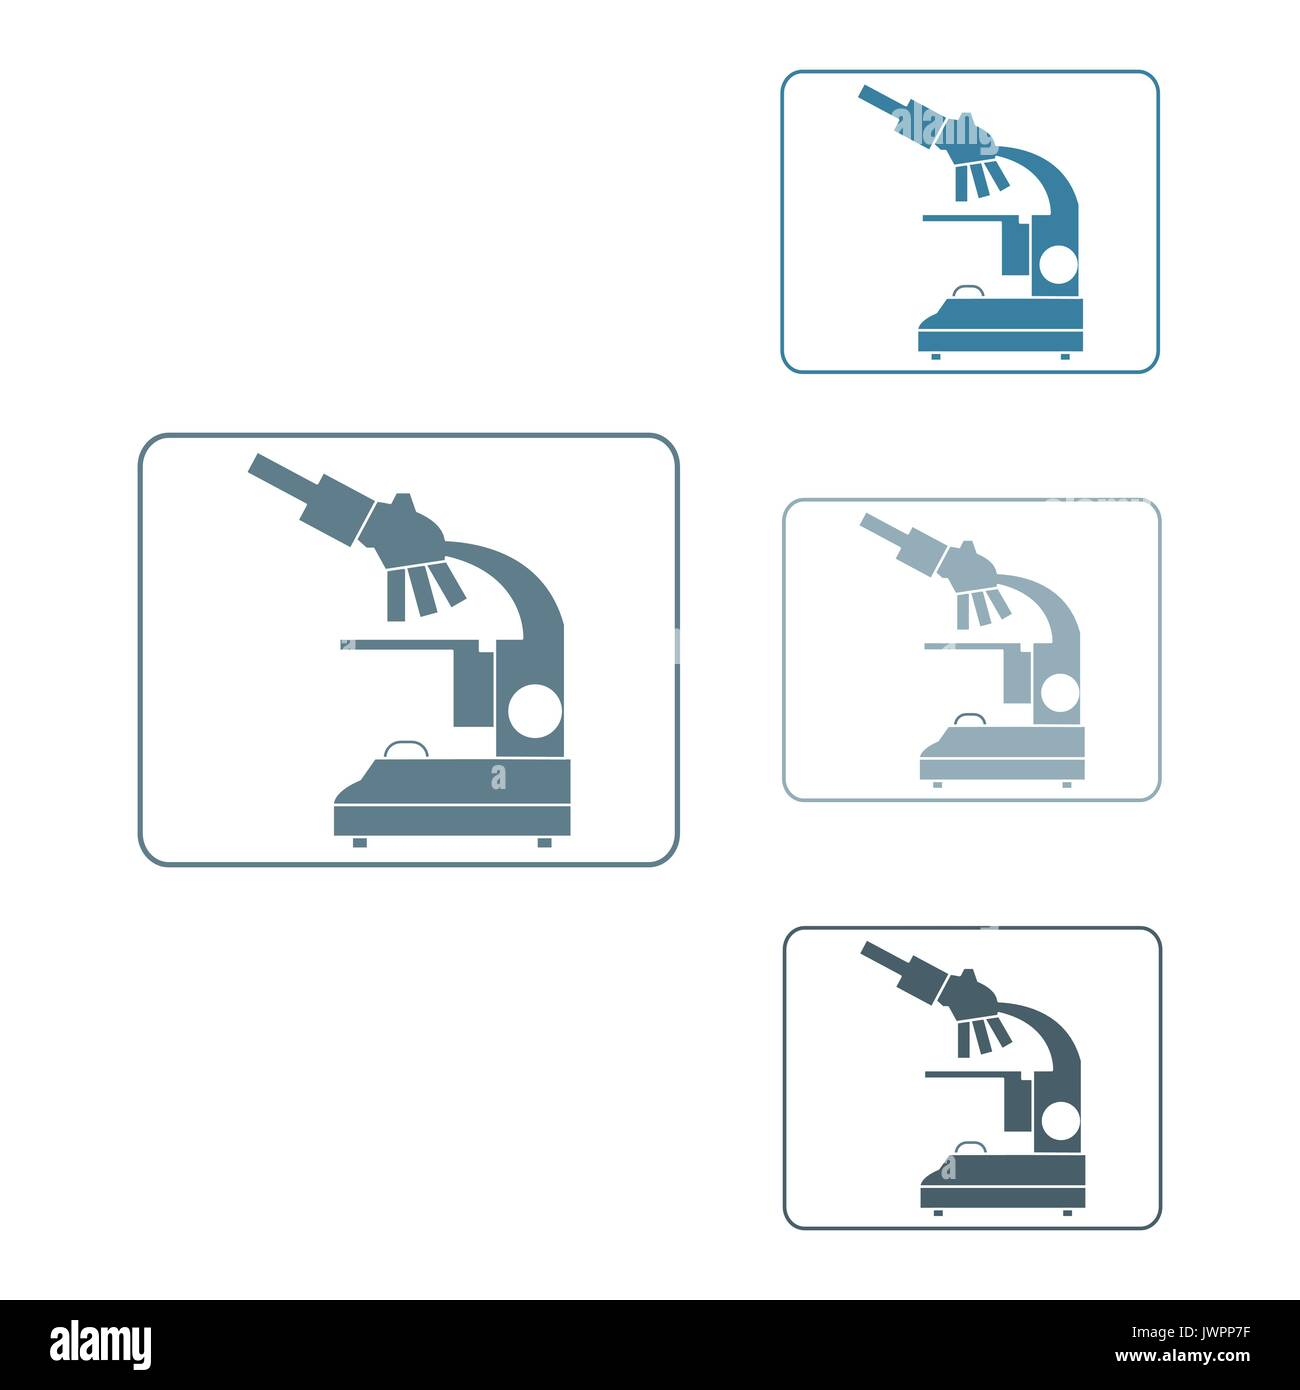 Stylized vector icons of microscope in different colors stylized vector icons of microscope in different colors magnifying device sign laboratory equipment symbol buycottarizona